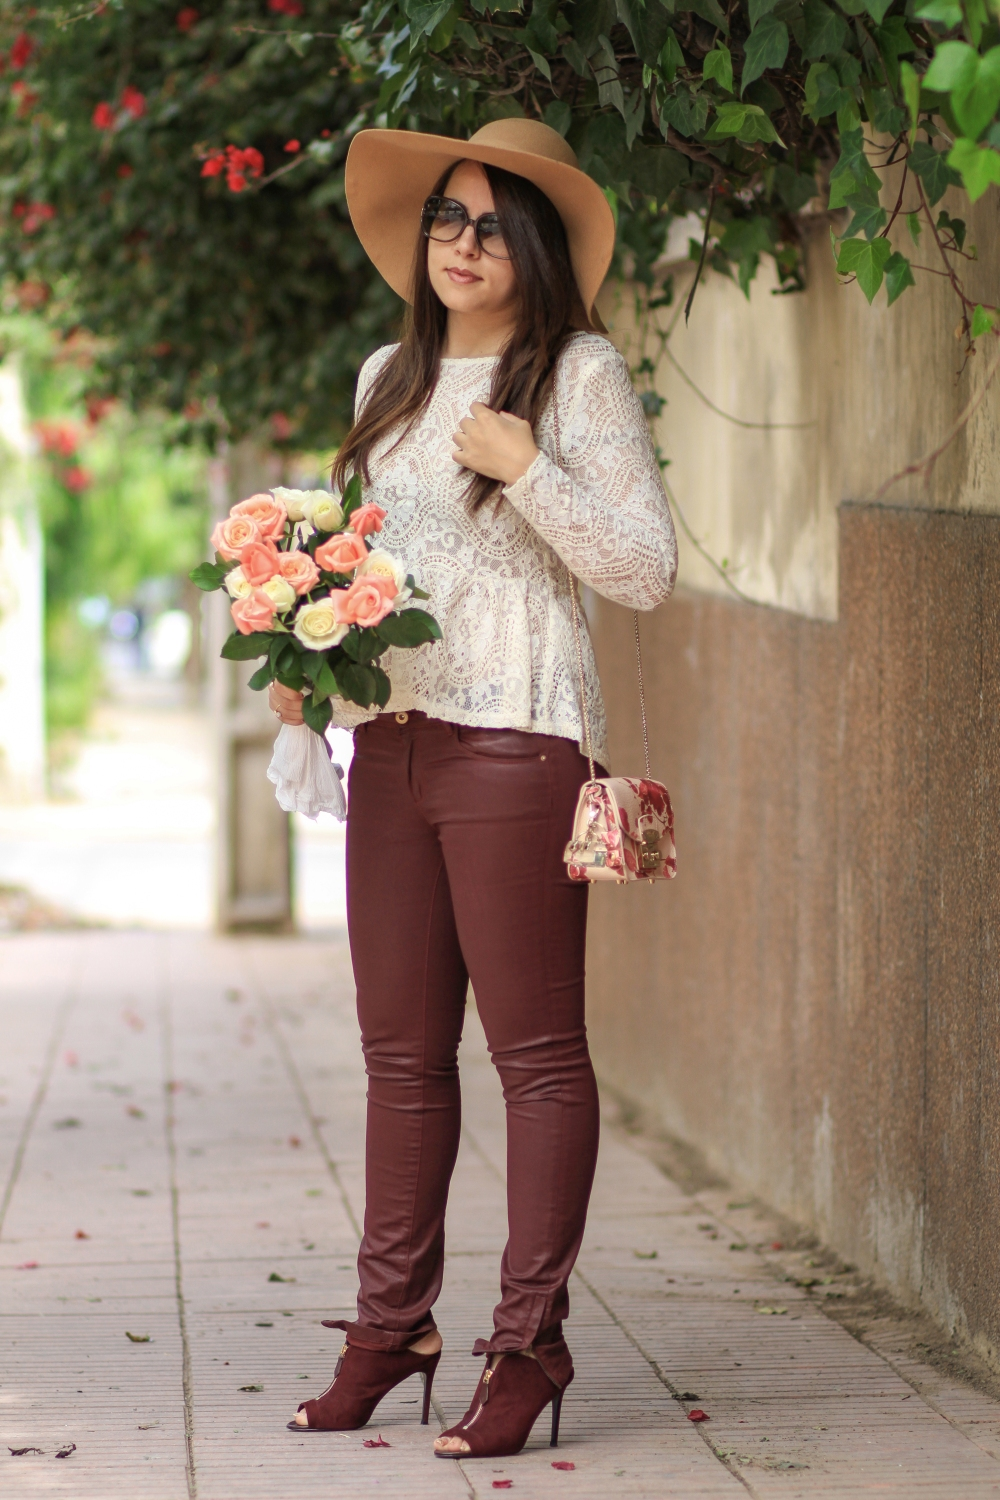 Lace-&-Flowers-mode-blog-chiccarpediem-mode-1